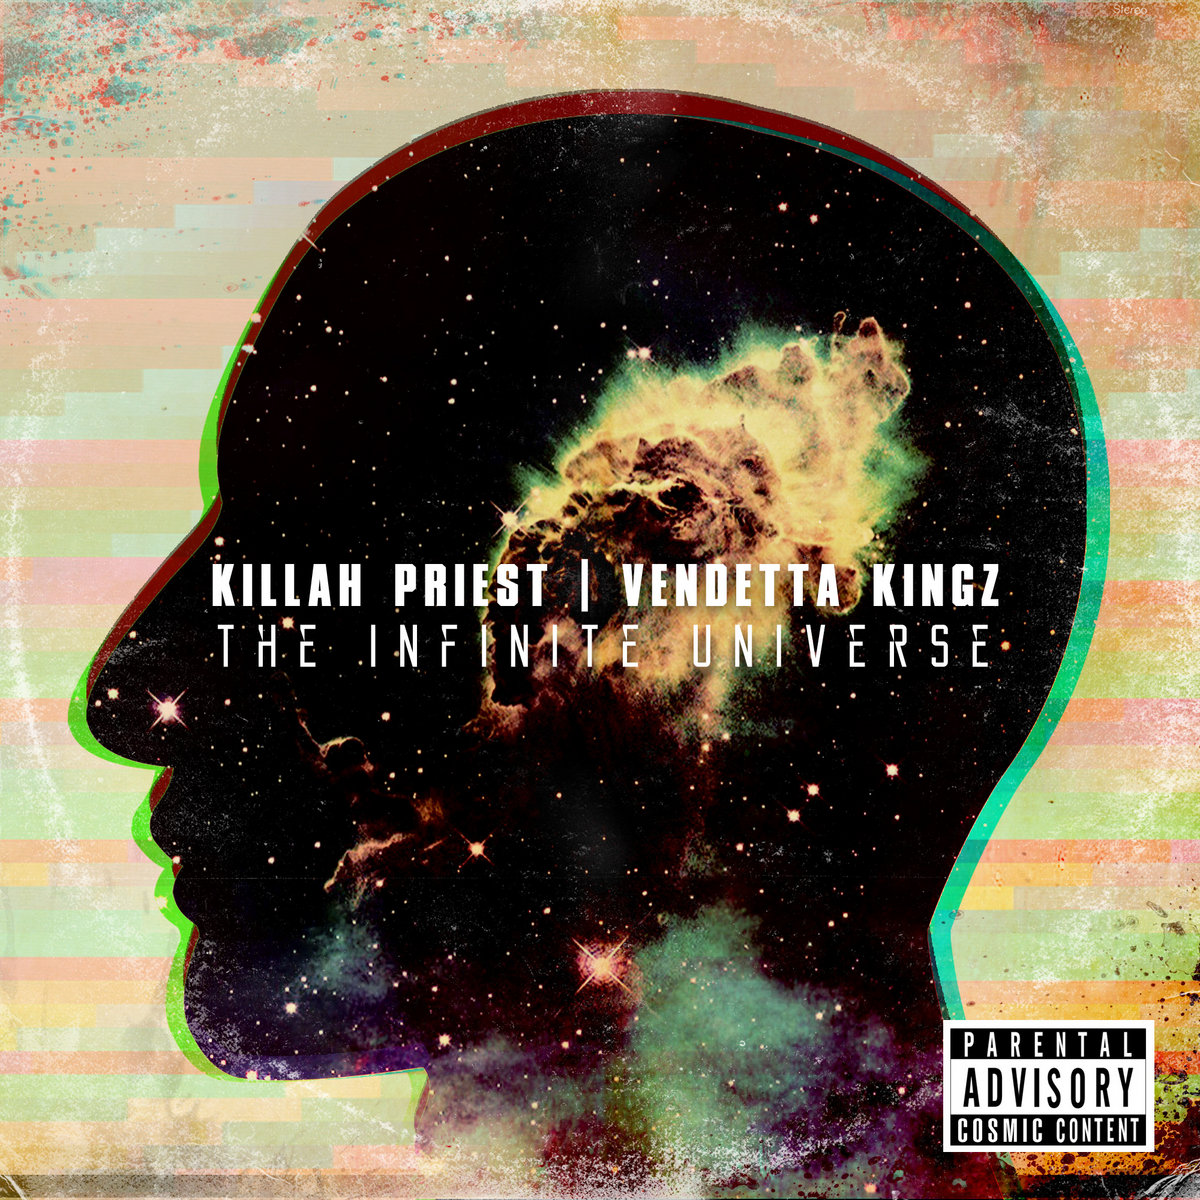 Resultado de imagen para Killah Priest & Vendetta Kingz - The Infinite Universe